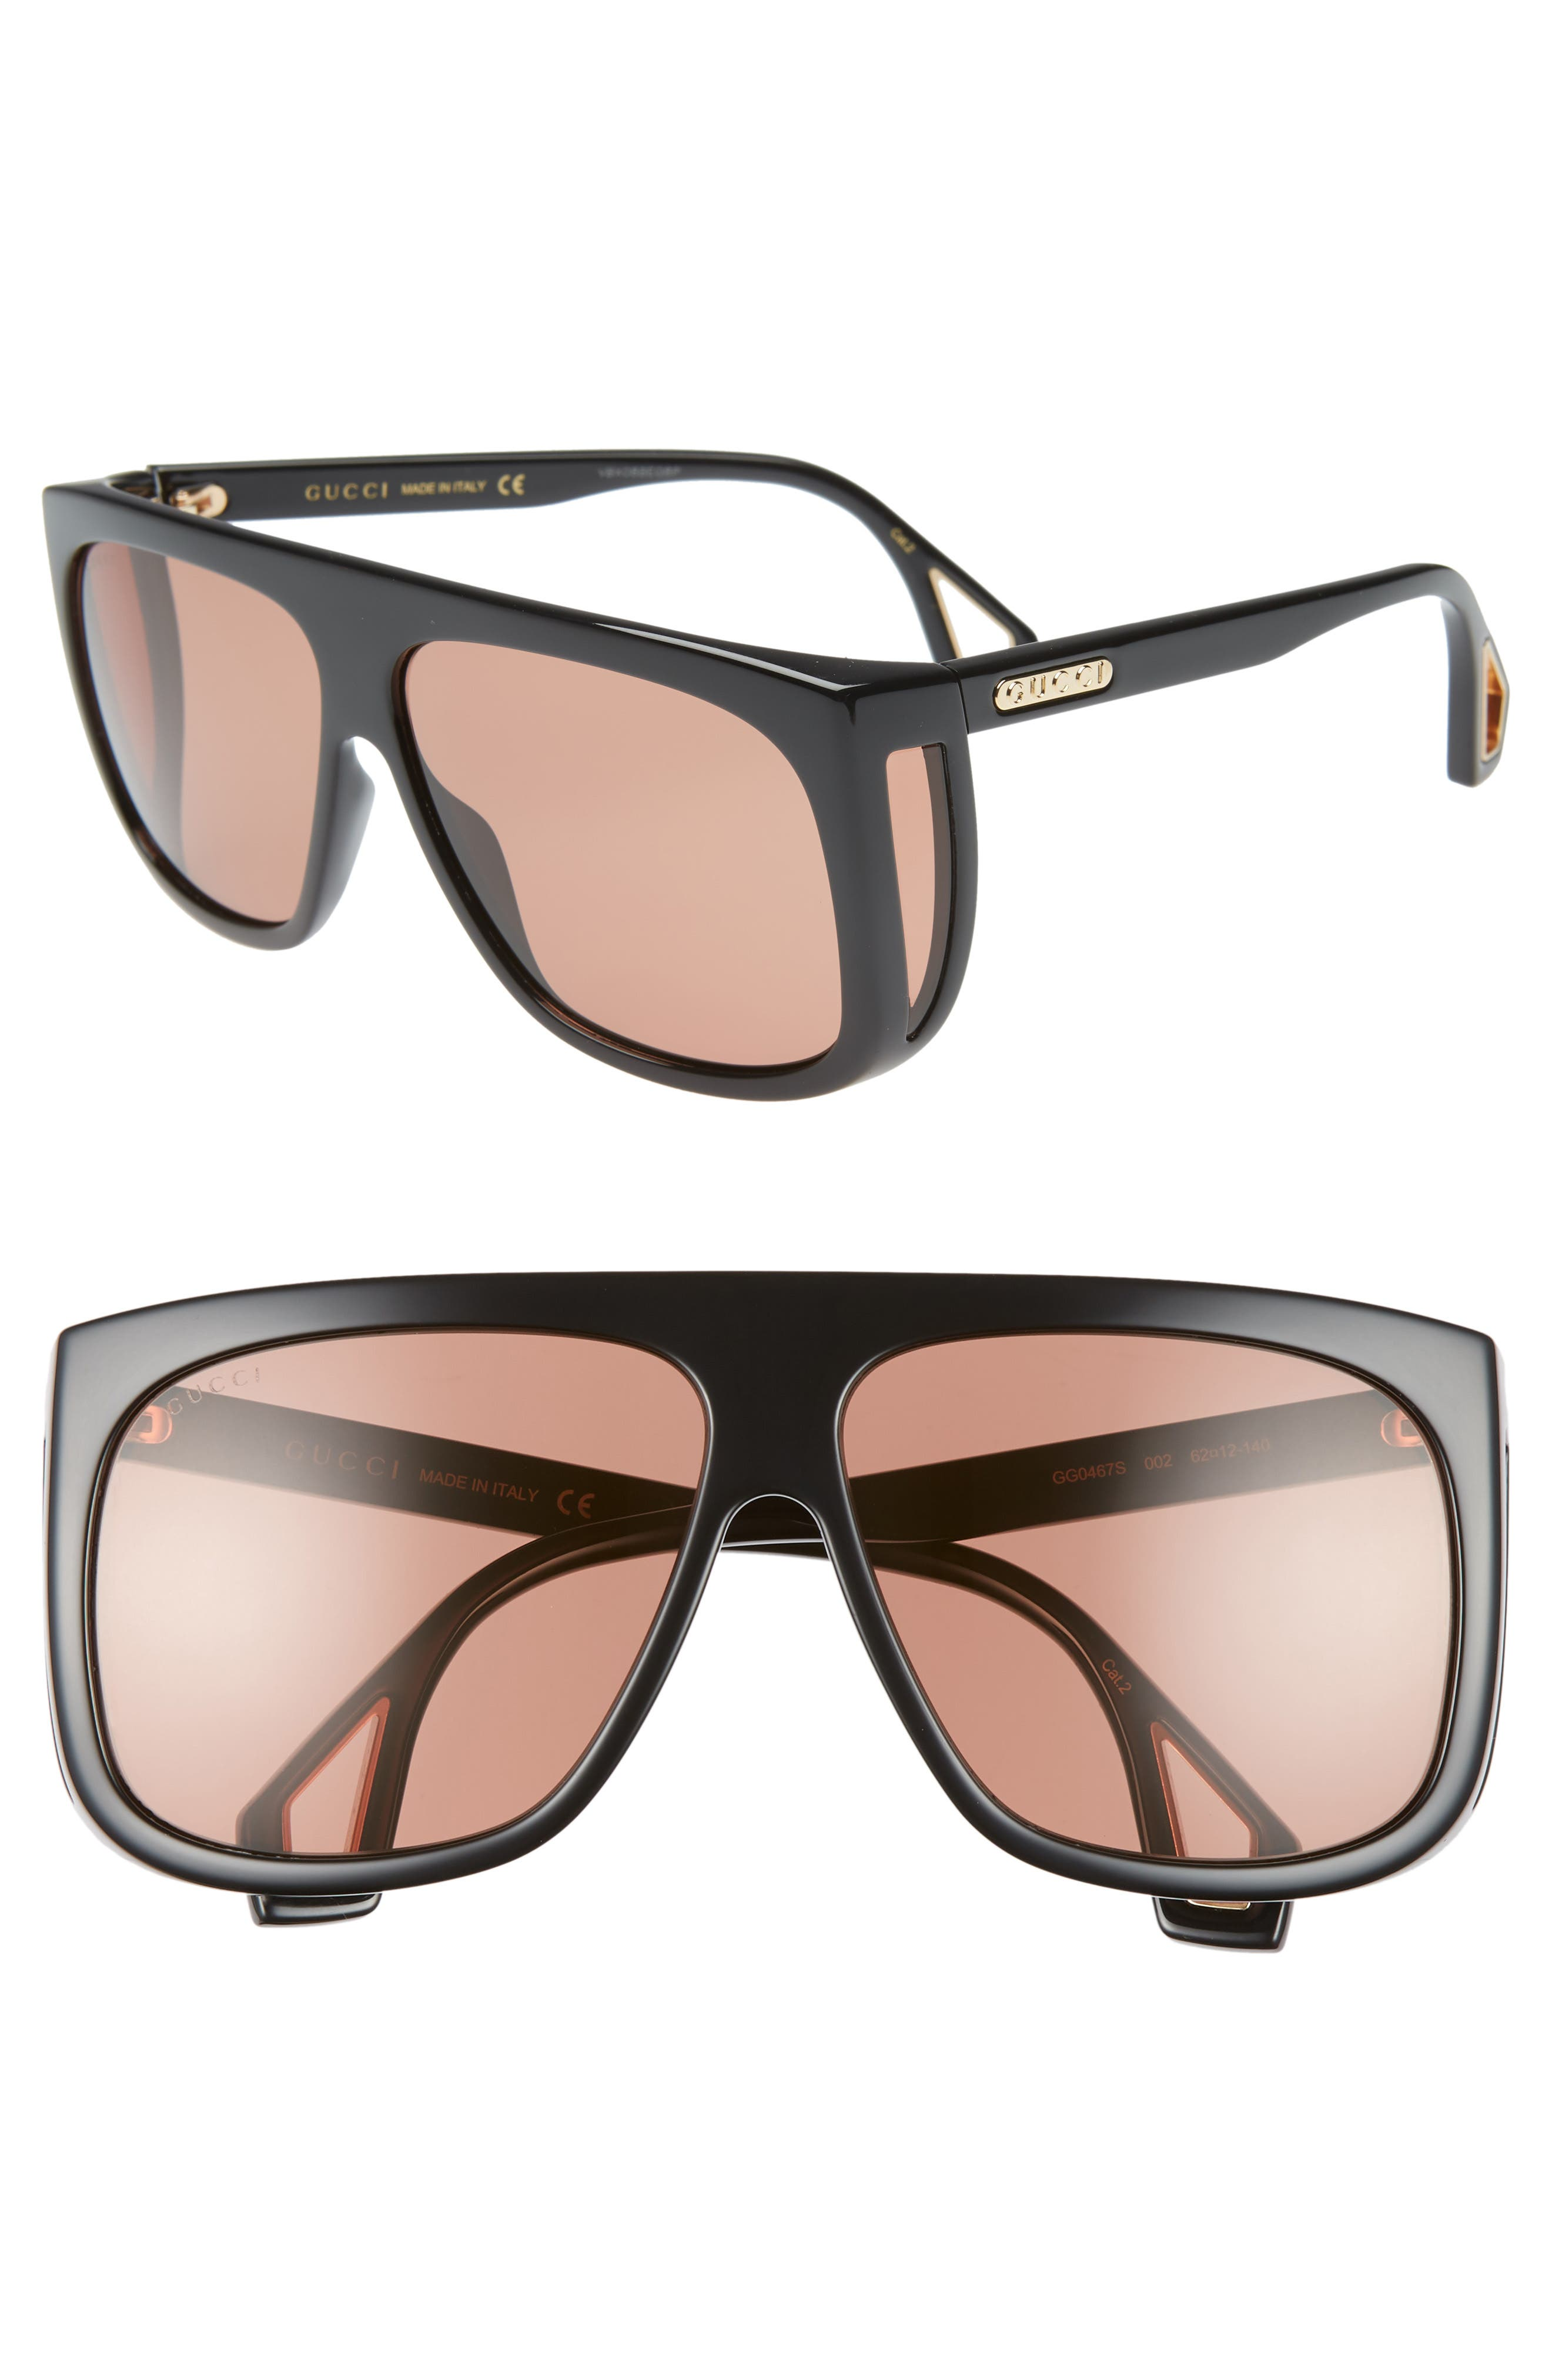 Gucci 62Mm Oversize Flat Top Sunglasses - Shiny Black Mazzuc/red Solid